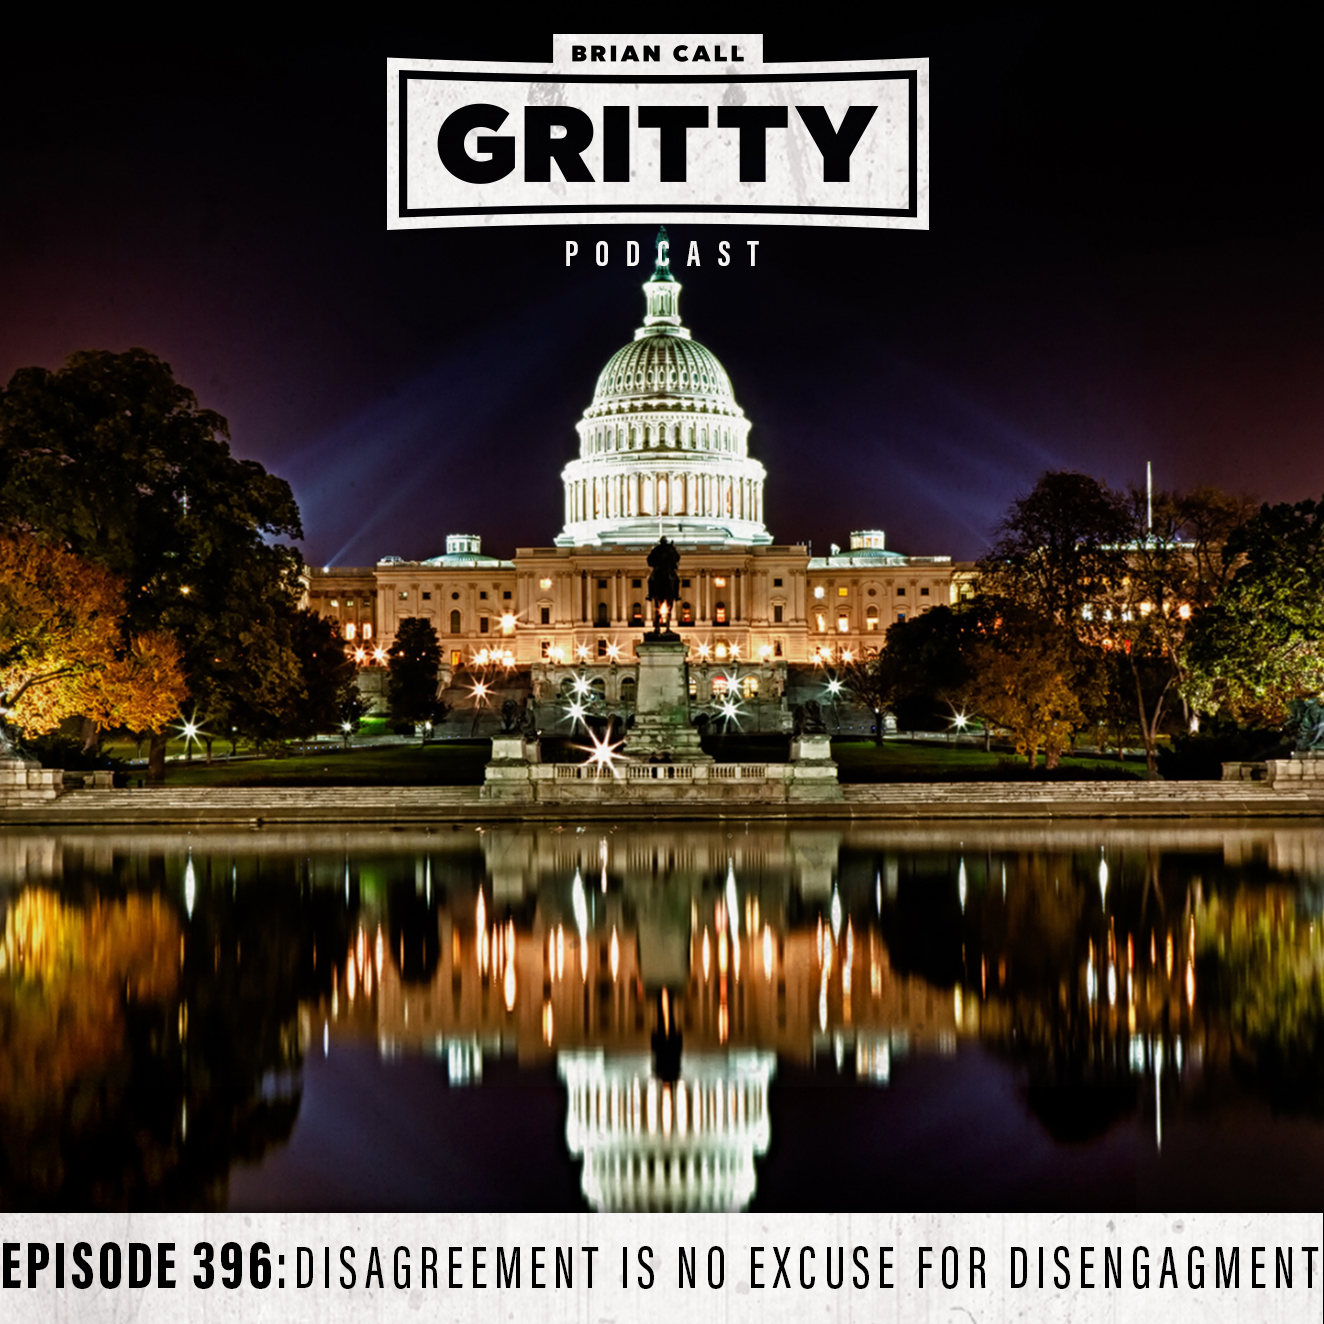 EPISODE 396: DISAGREEMENT IS NO EXCUSE FOR DISENGAGEMENT